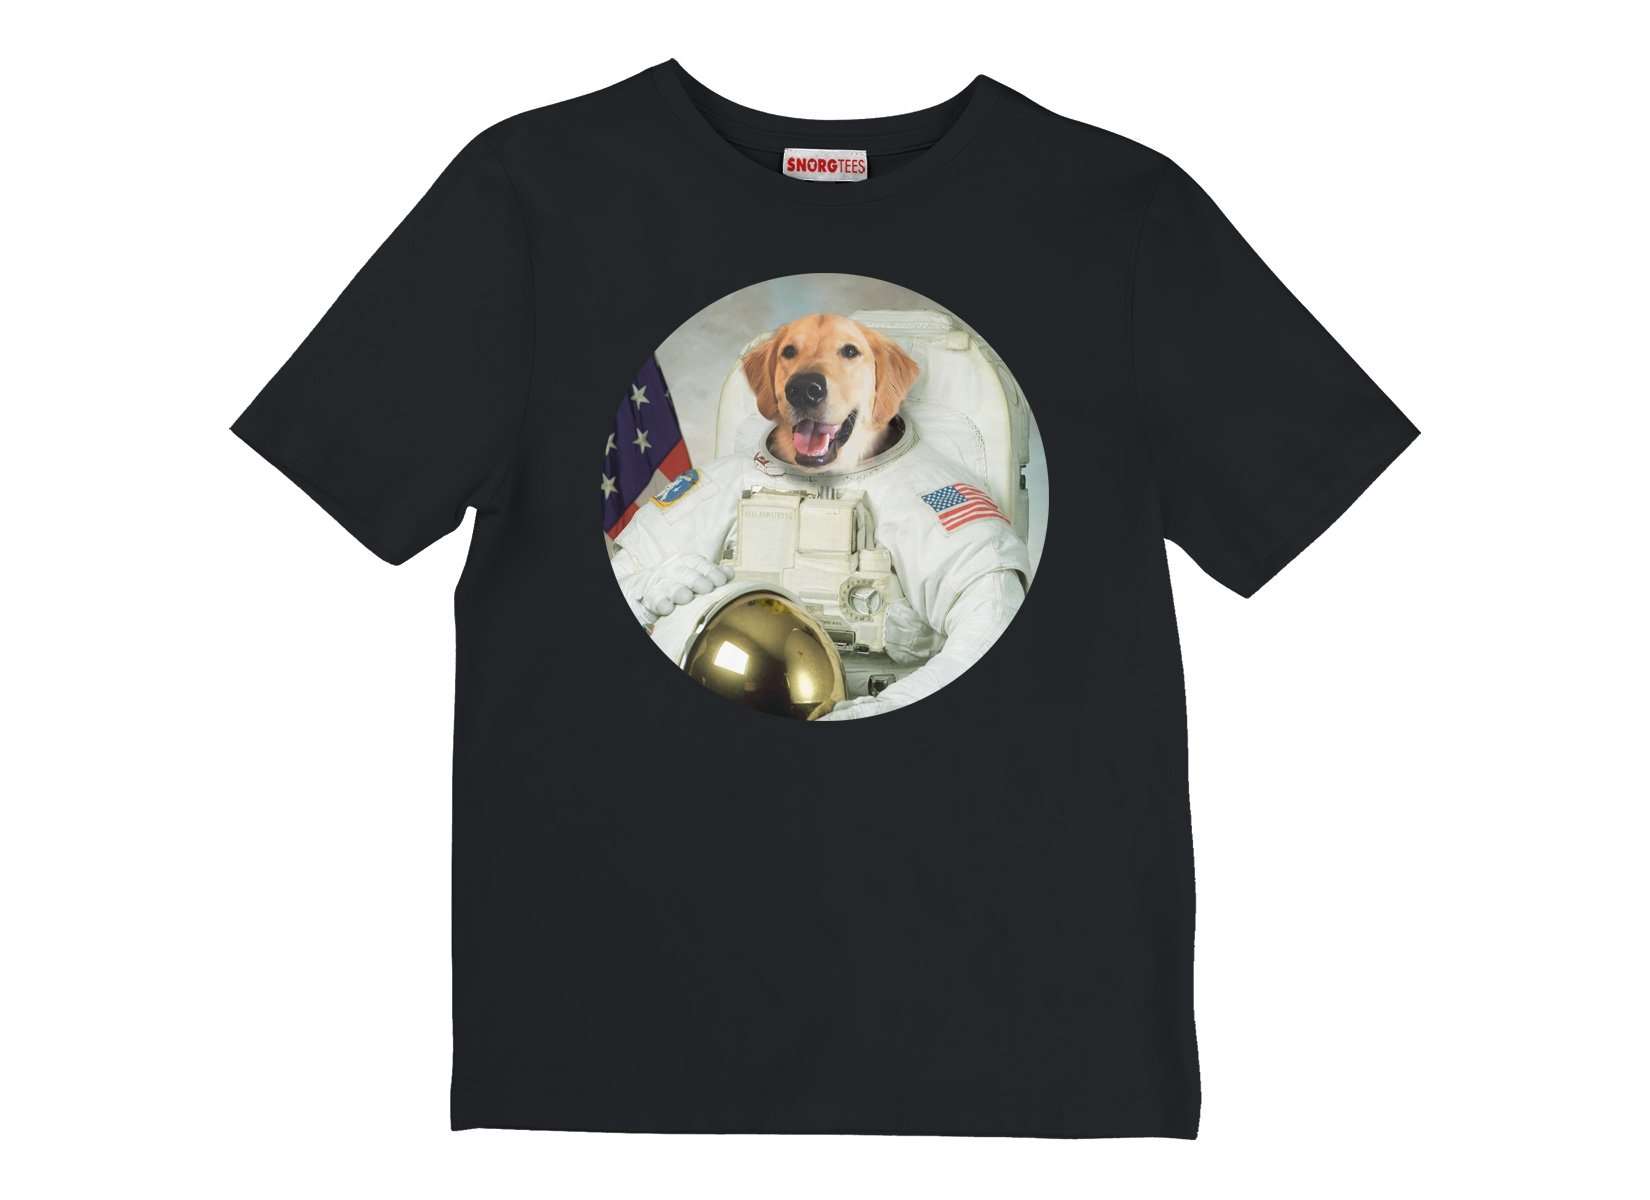 Astrodog on Kids T-Shirt